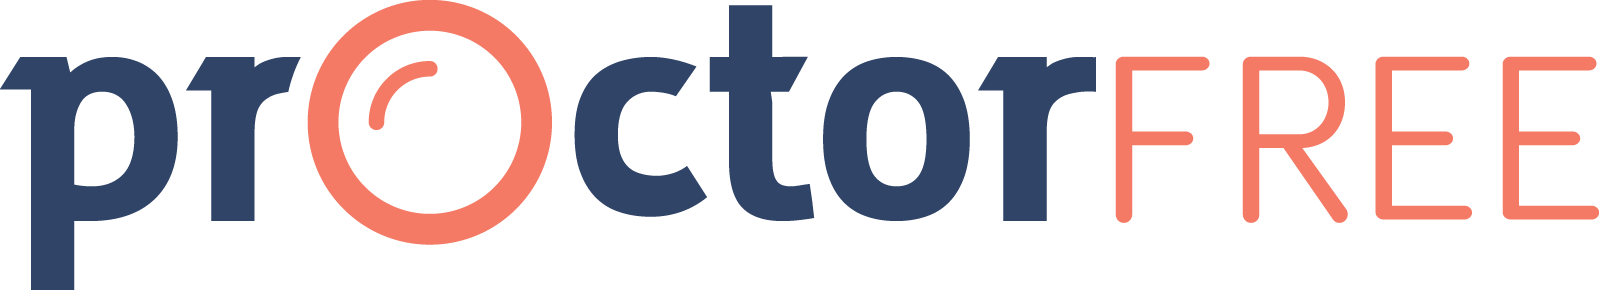 proctorfree-logo-transparent.png